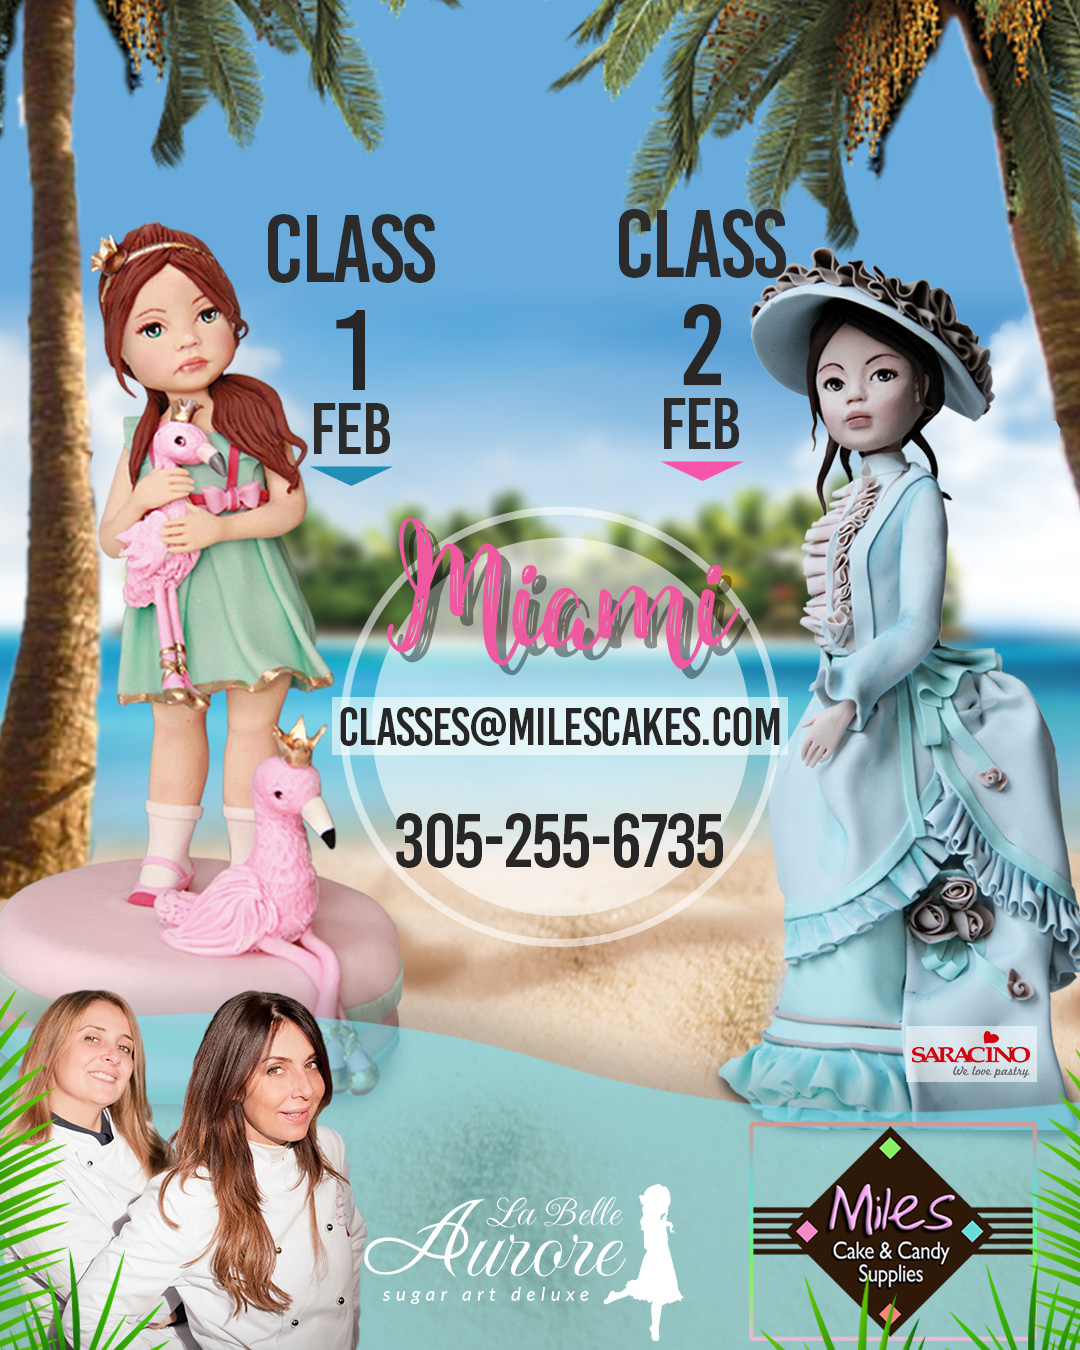 Miles cakes and candy supplies MasterClass Miami Modeling sugar doll La Belle Aurore